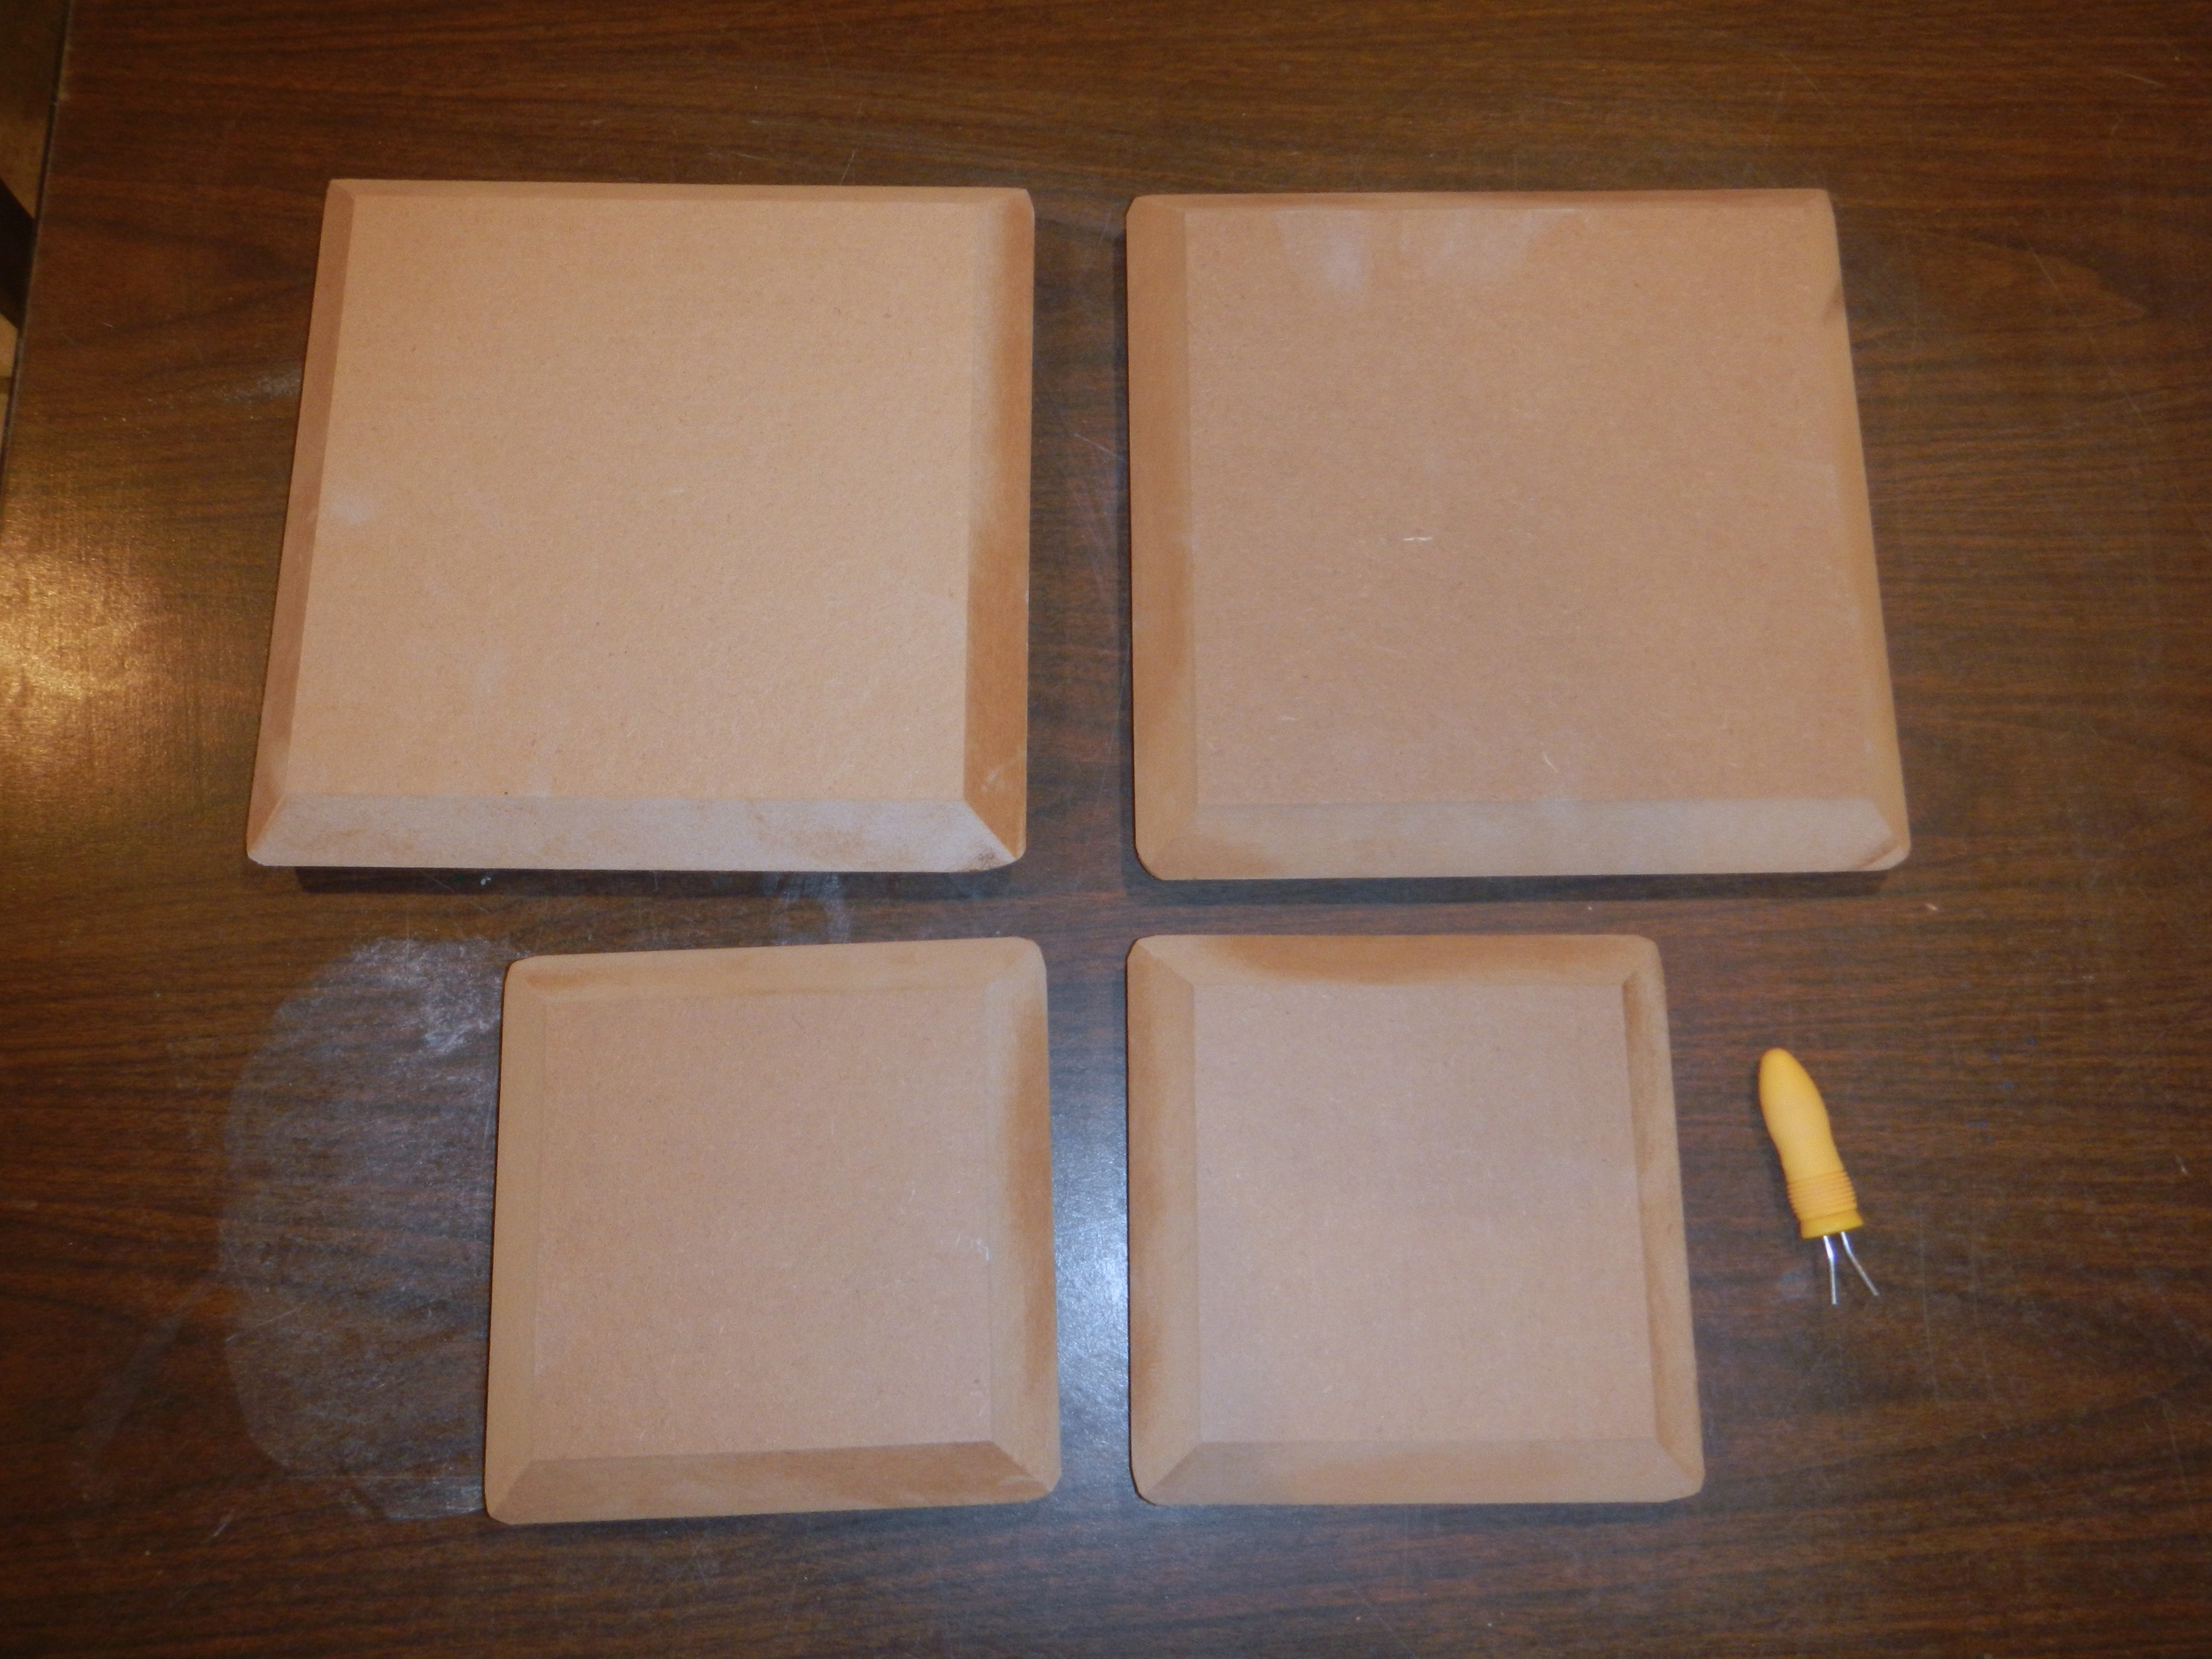 (Hump forms for making square dinnerware)